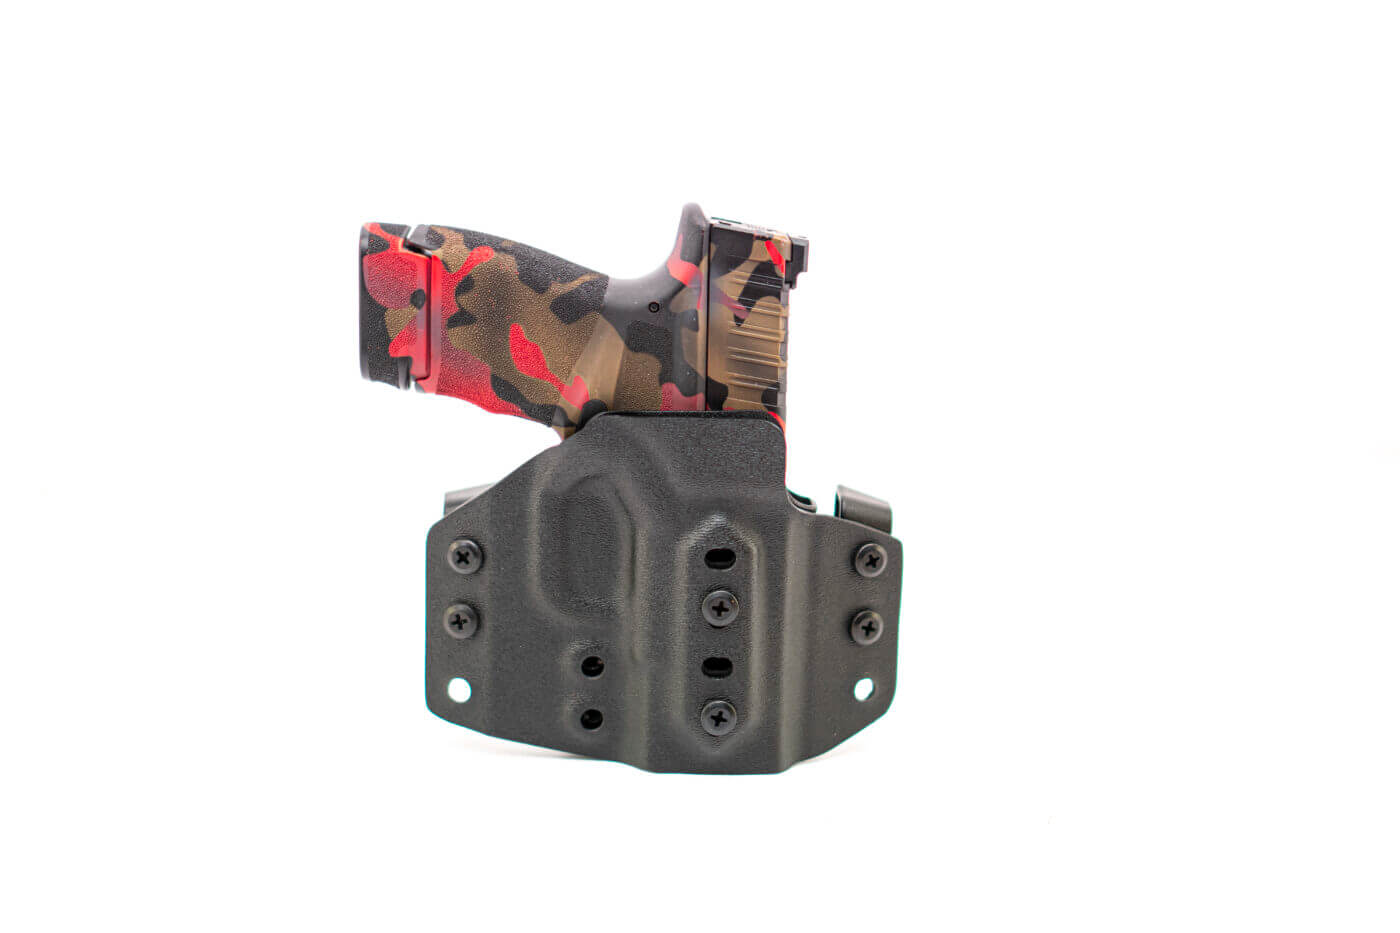 Trifecta CCW holster for the Hellcat